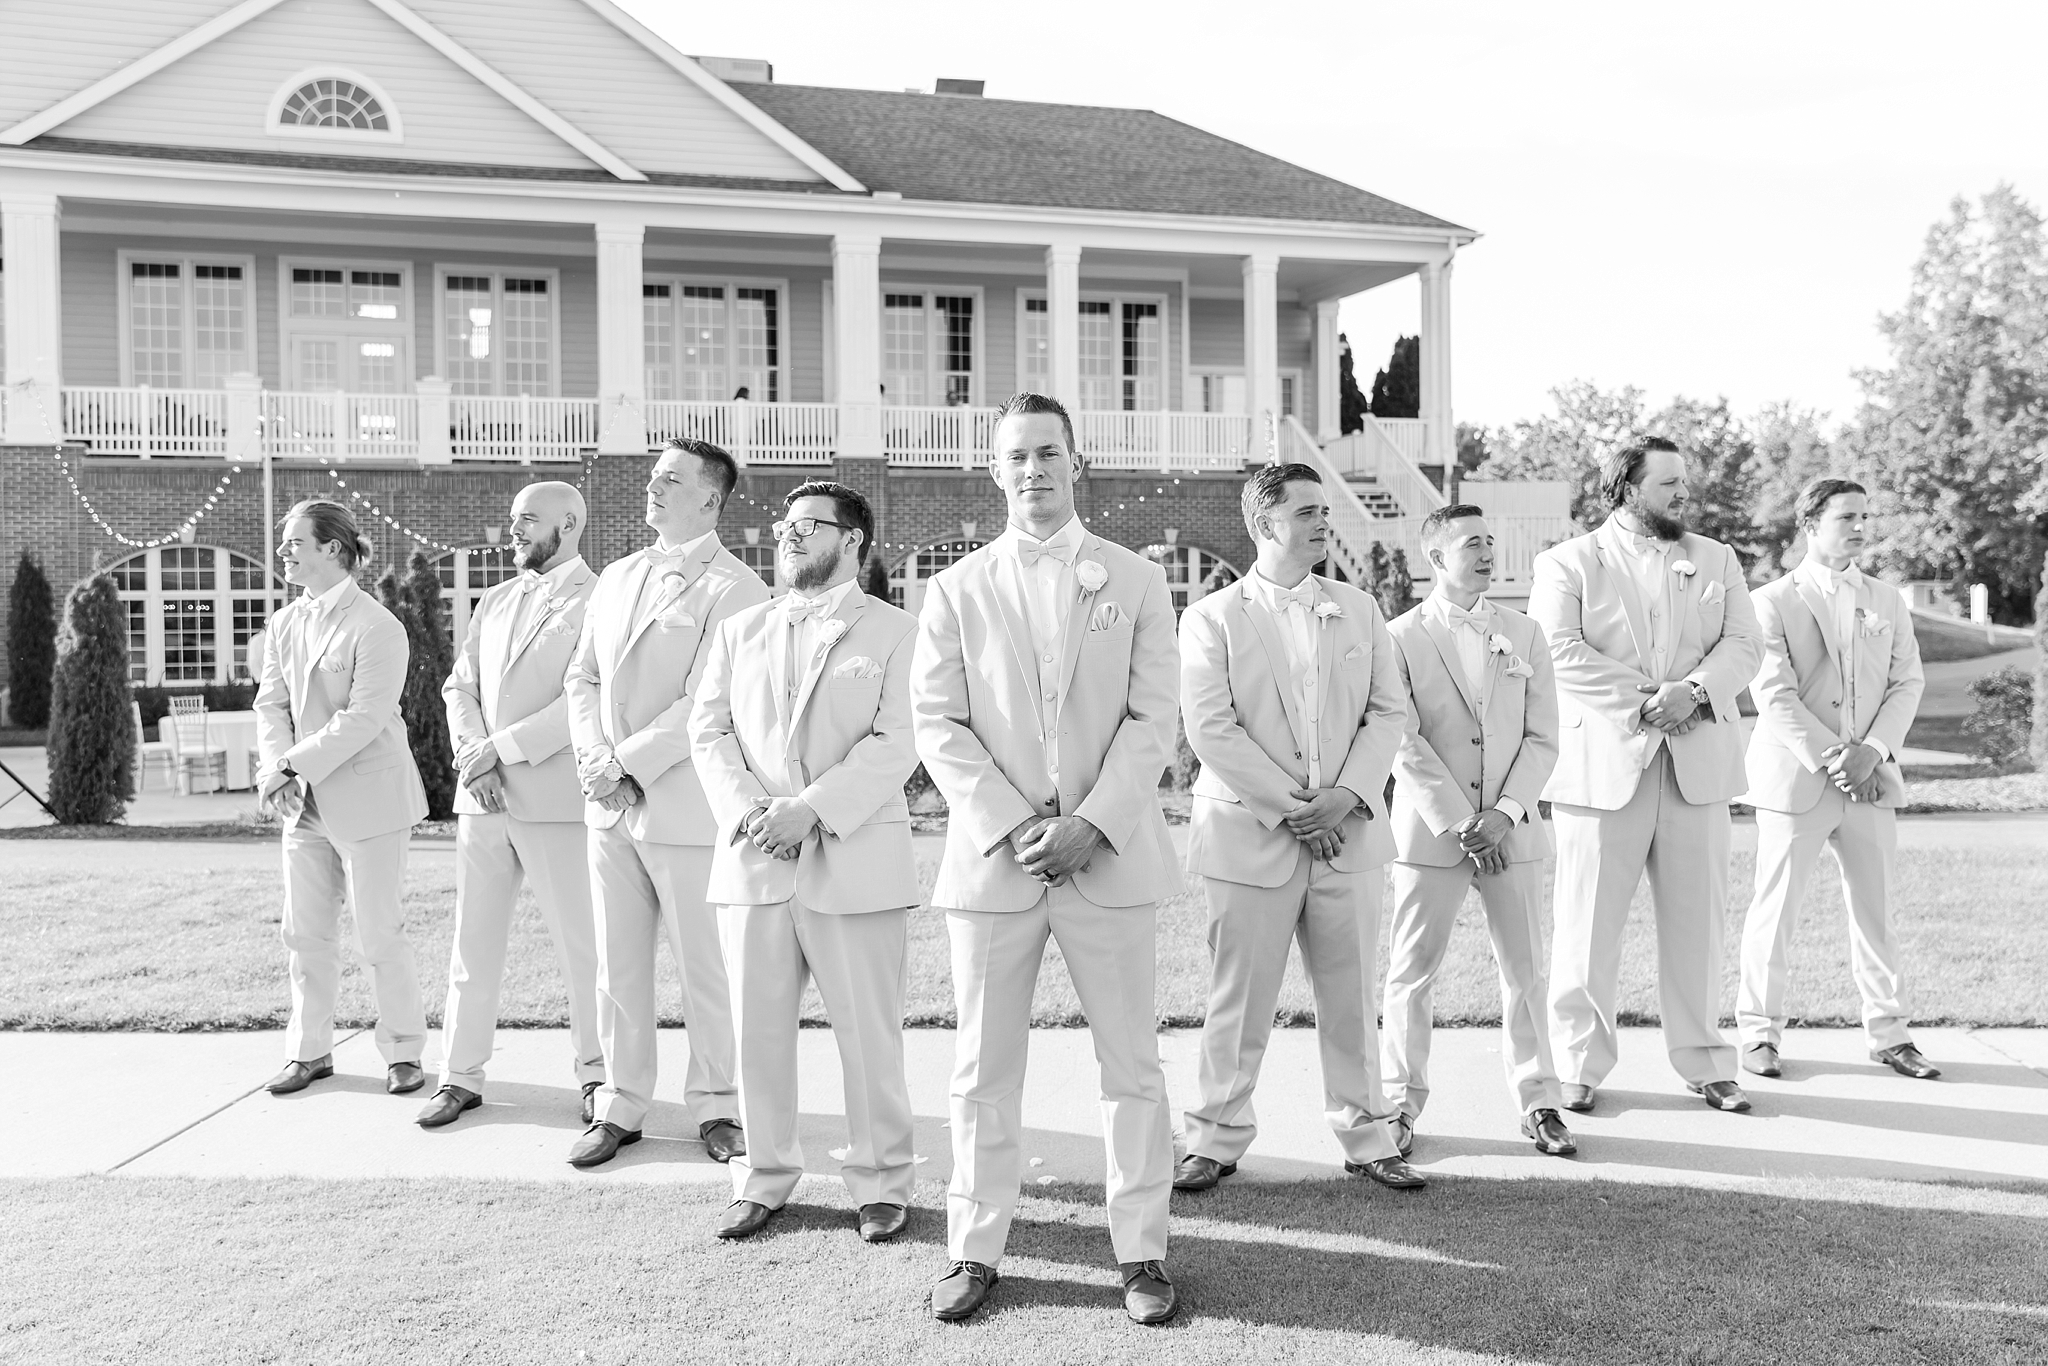 candid-timeless-wedding-photos-at-the-captains-club-in-grand-blanc-michigan-by-courtney-carolyn-photography_0068.jpg